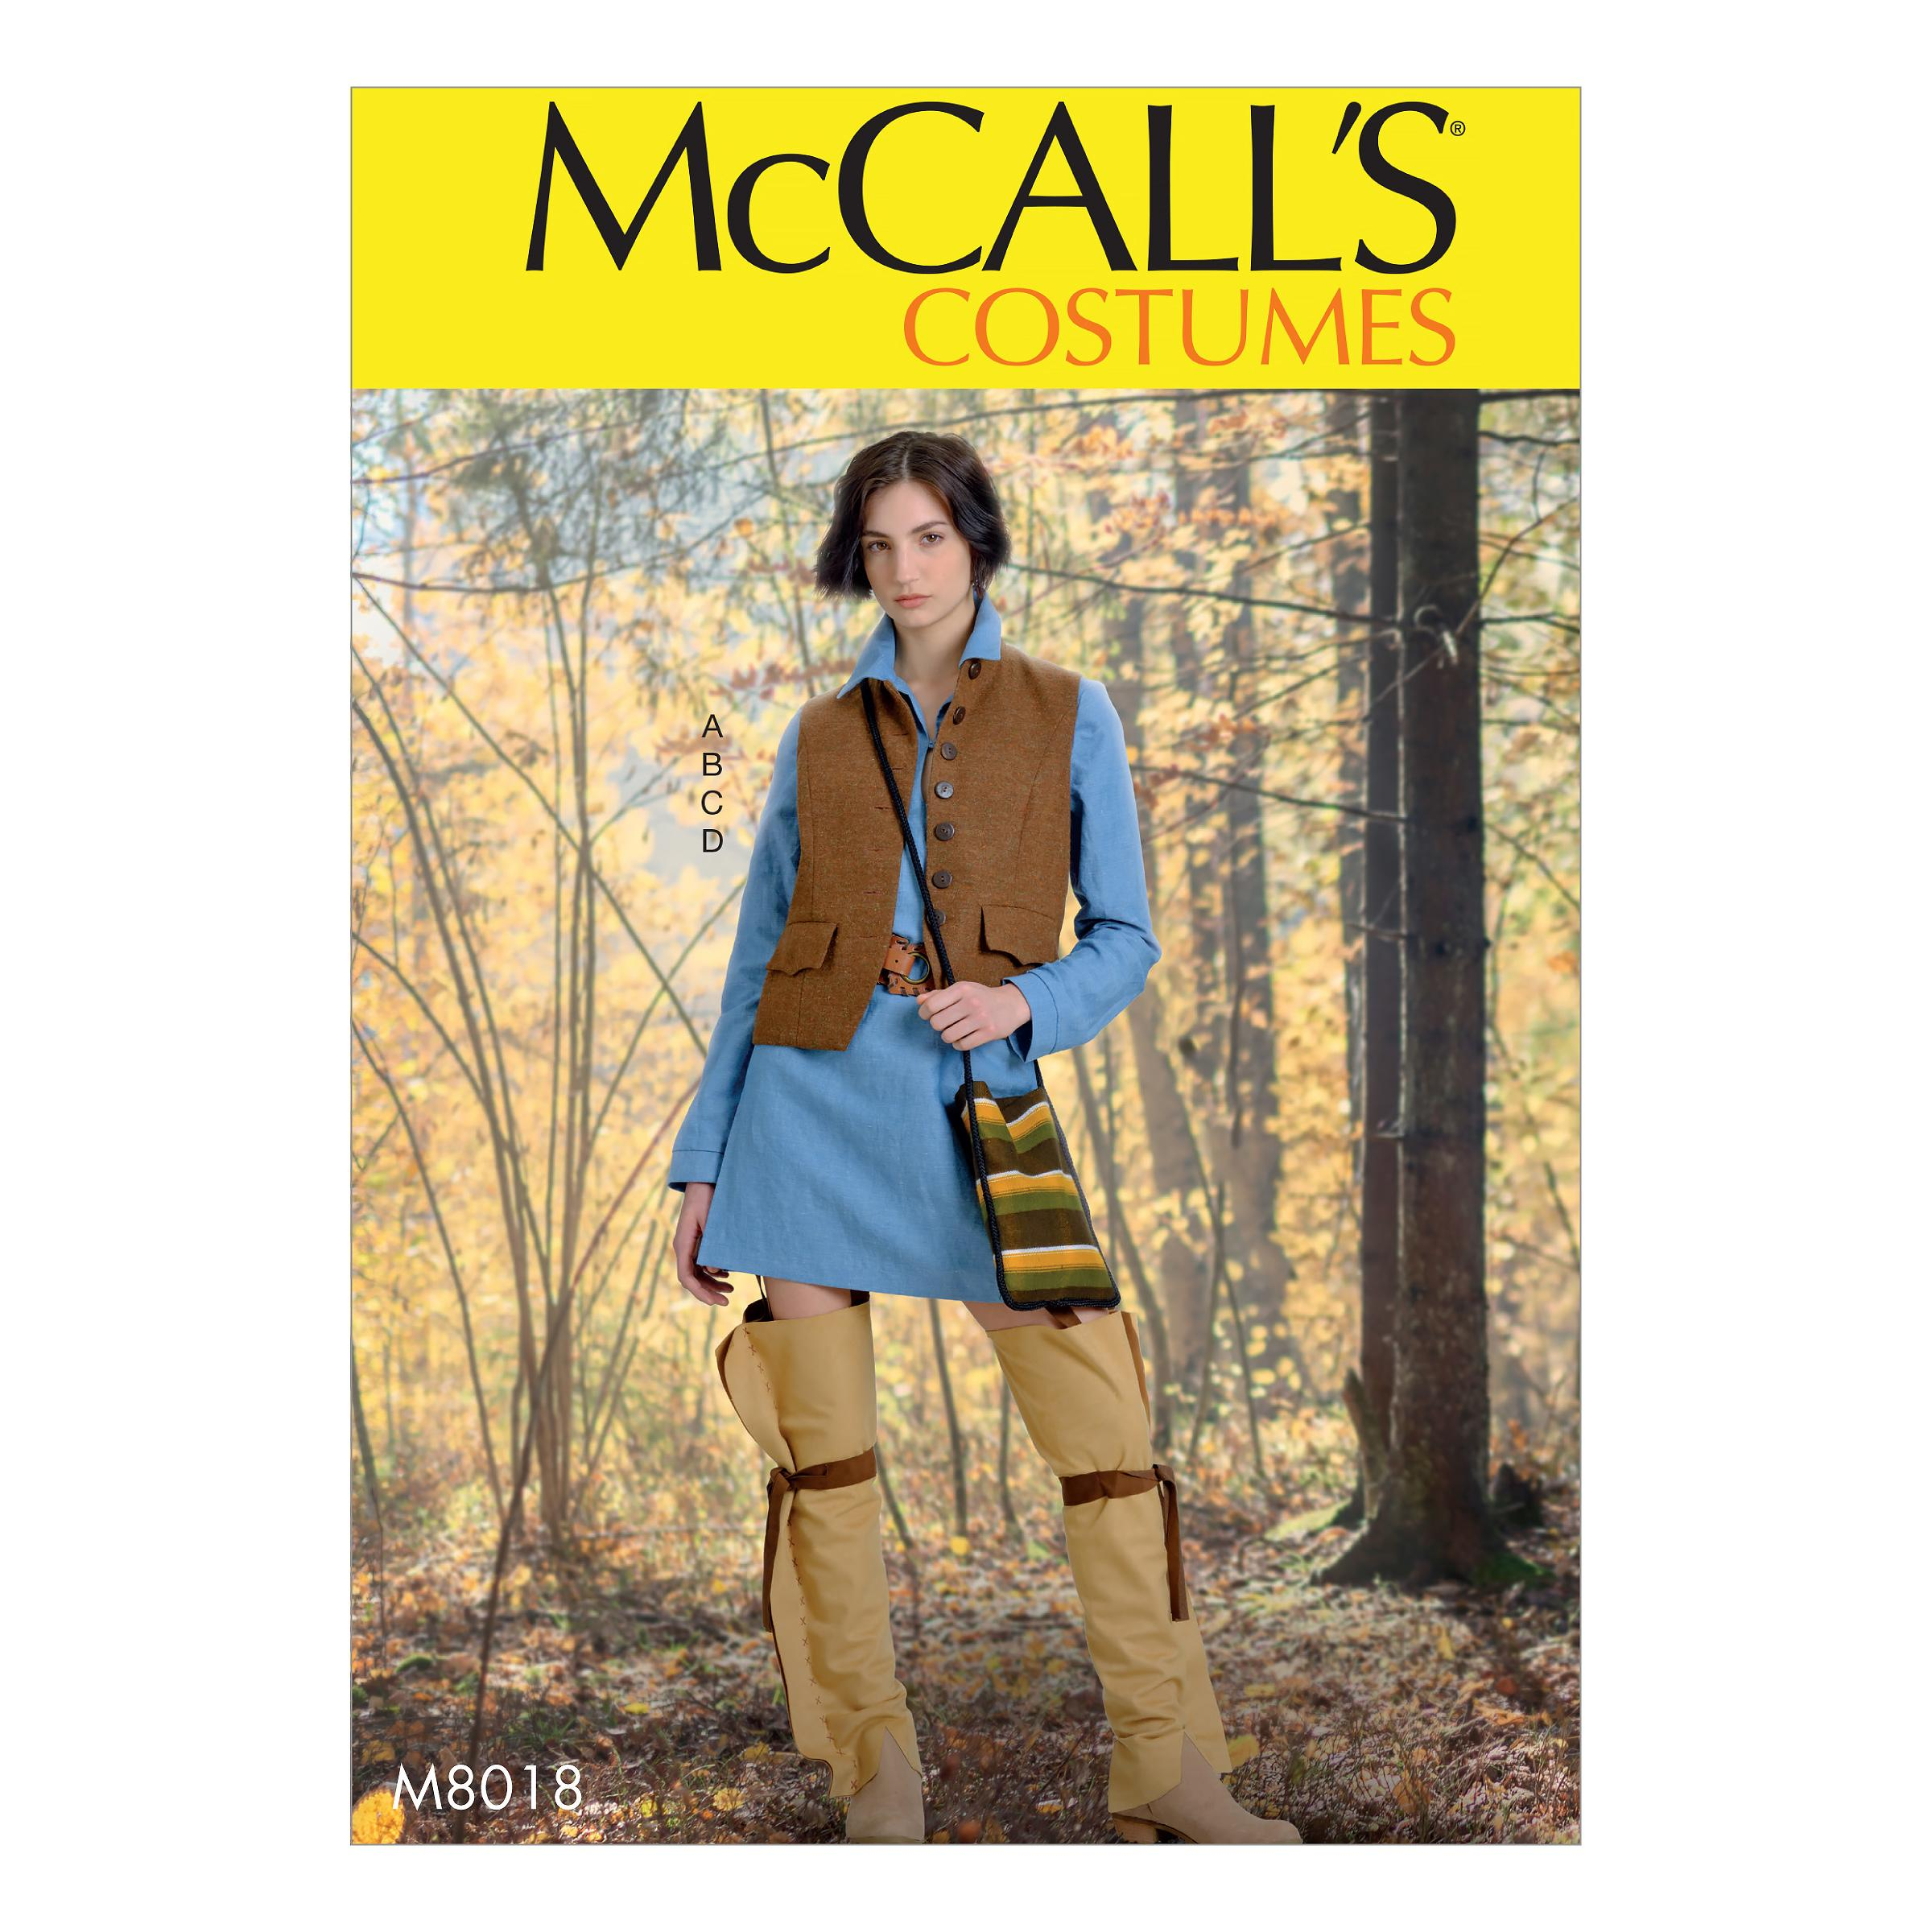 McCalls M8018 Misses , Costumes